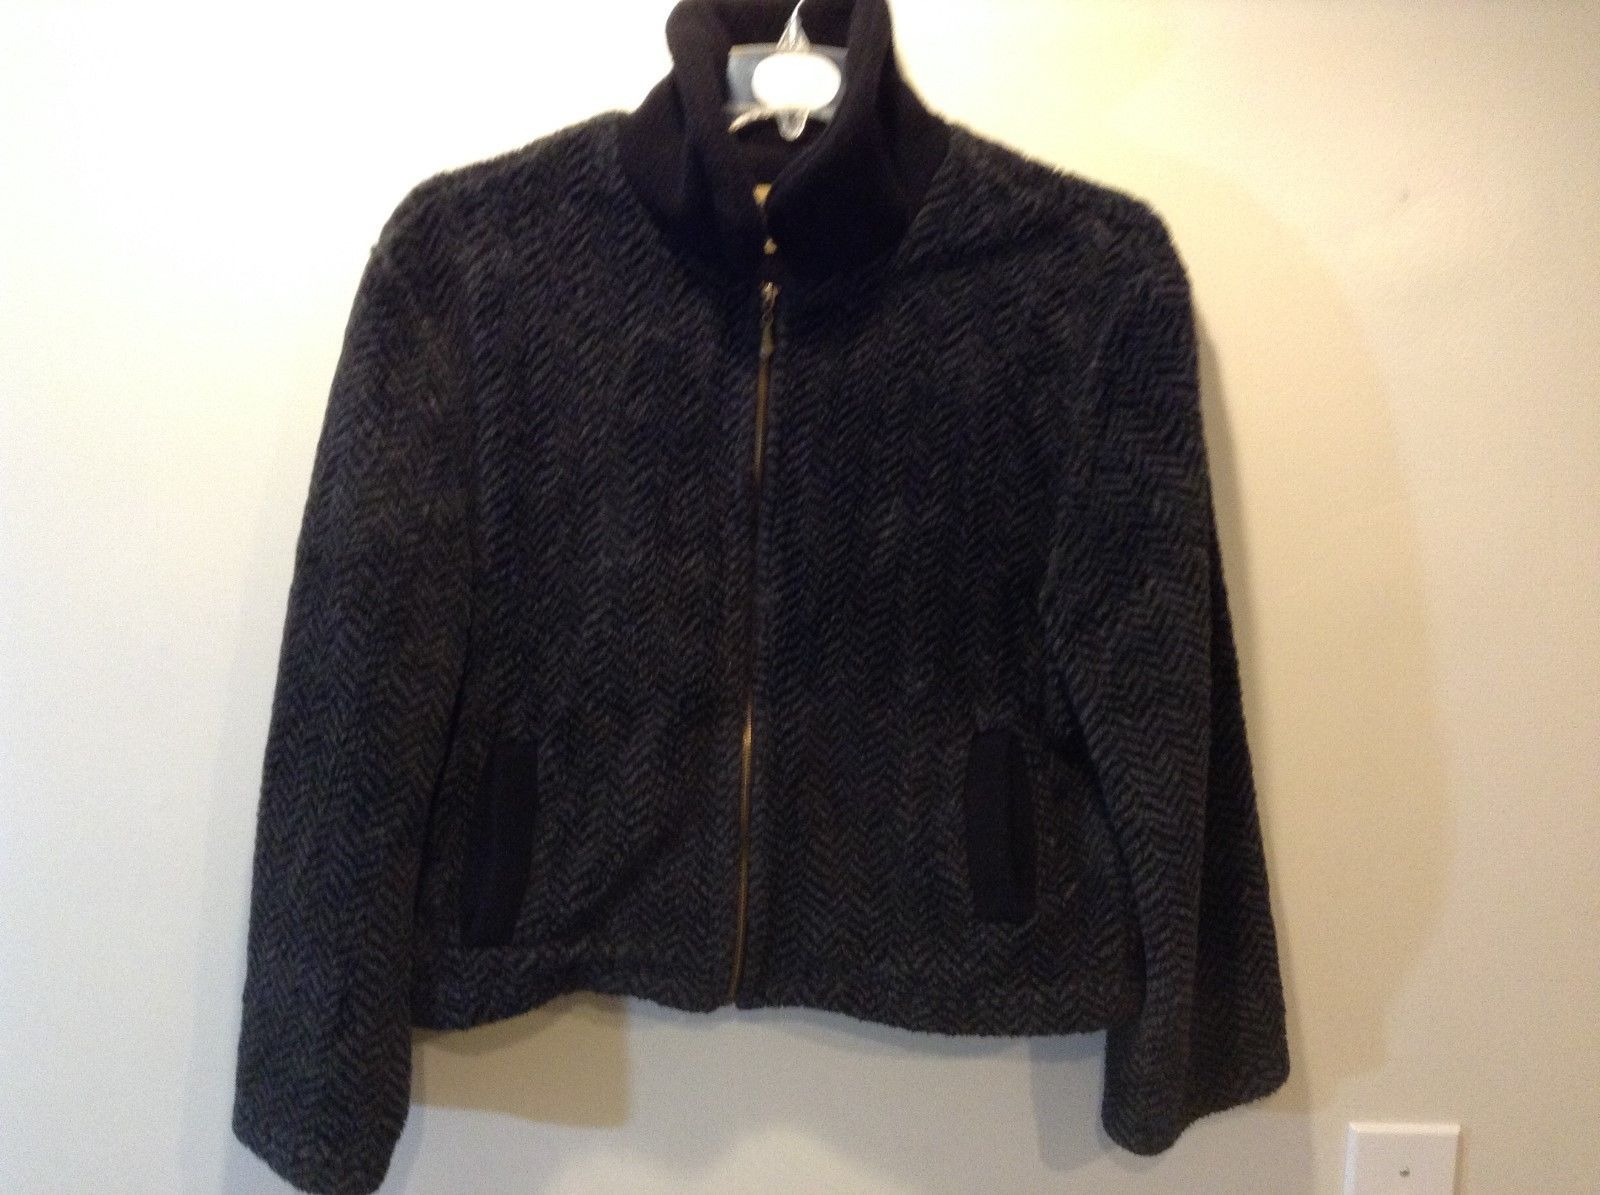 Ladies Warm Collared Zip Up Black and Grey Jacket by TIACE